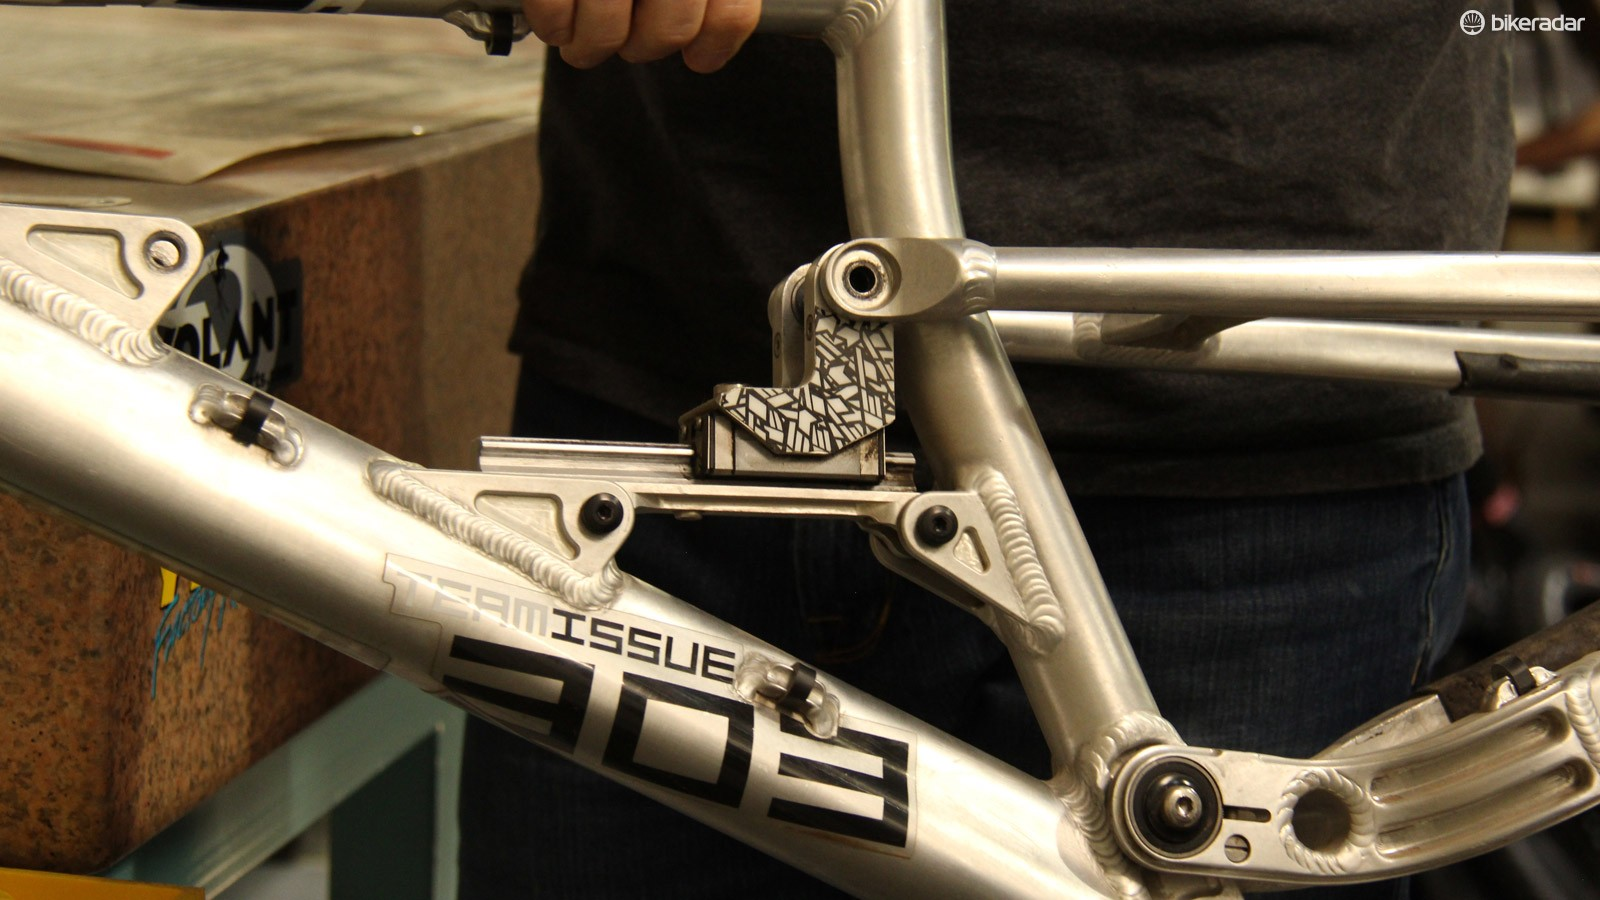 Switch Infinity merges lessons learned from the company's linear rail bikes, such as the 303 shown here...